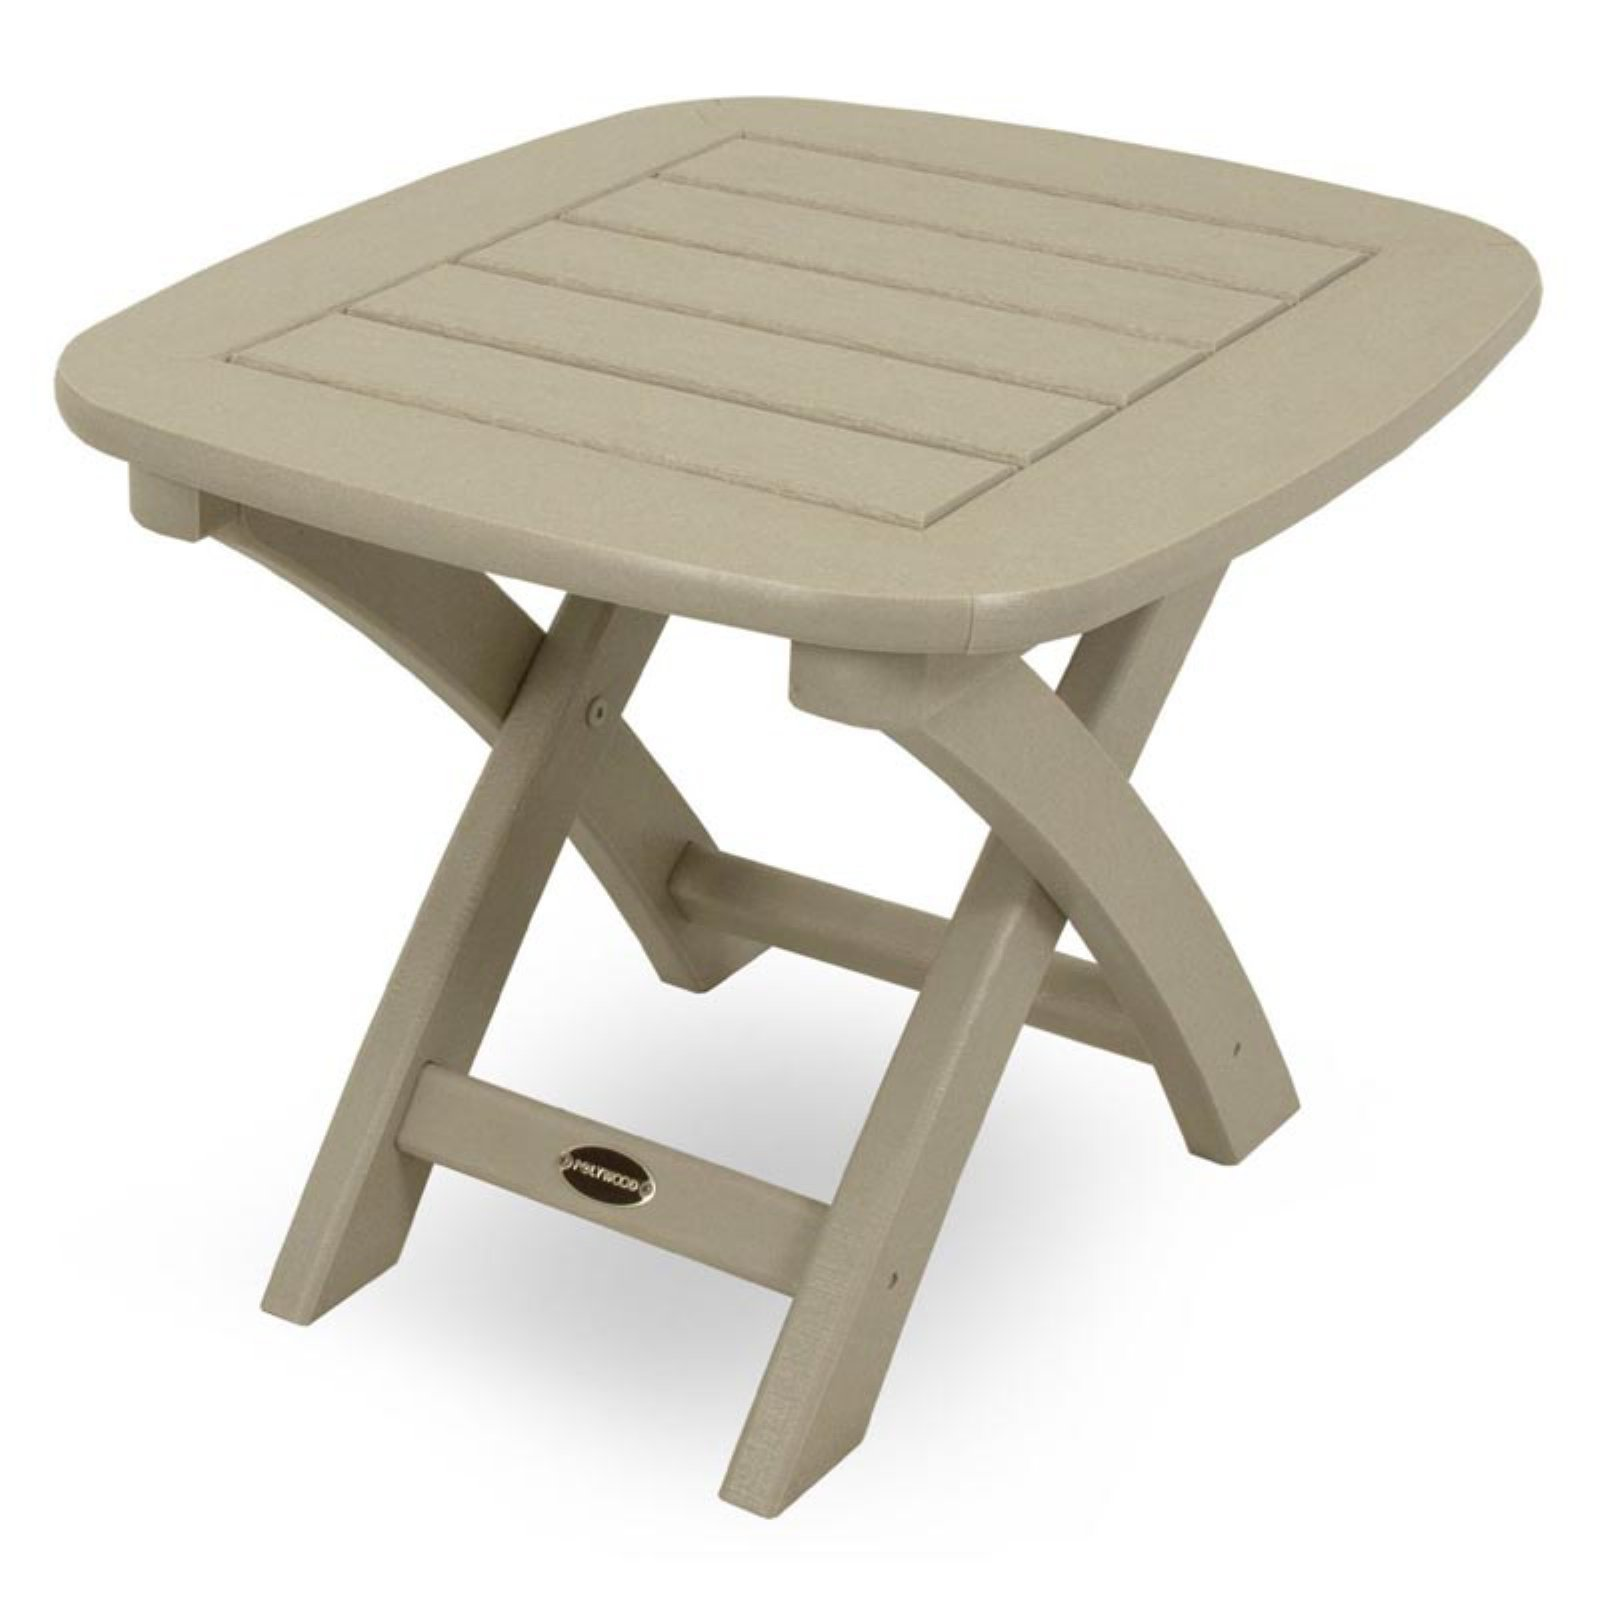 POLYWOODu0026reg; Nautical Recycled Plastic Outdoor Side Table